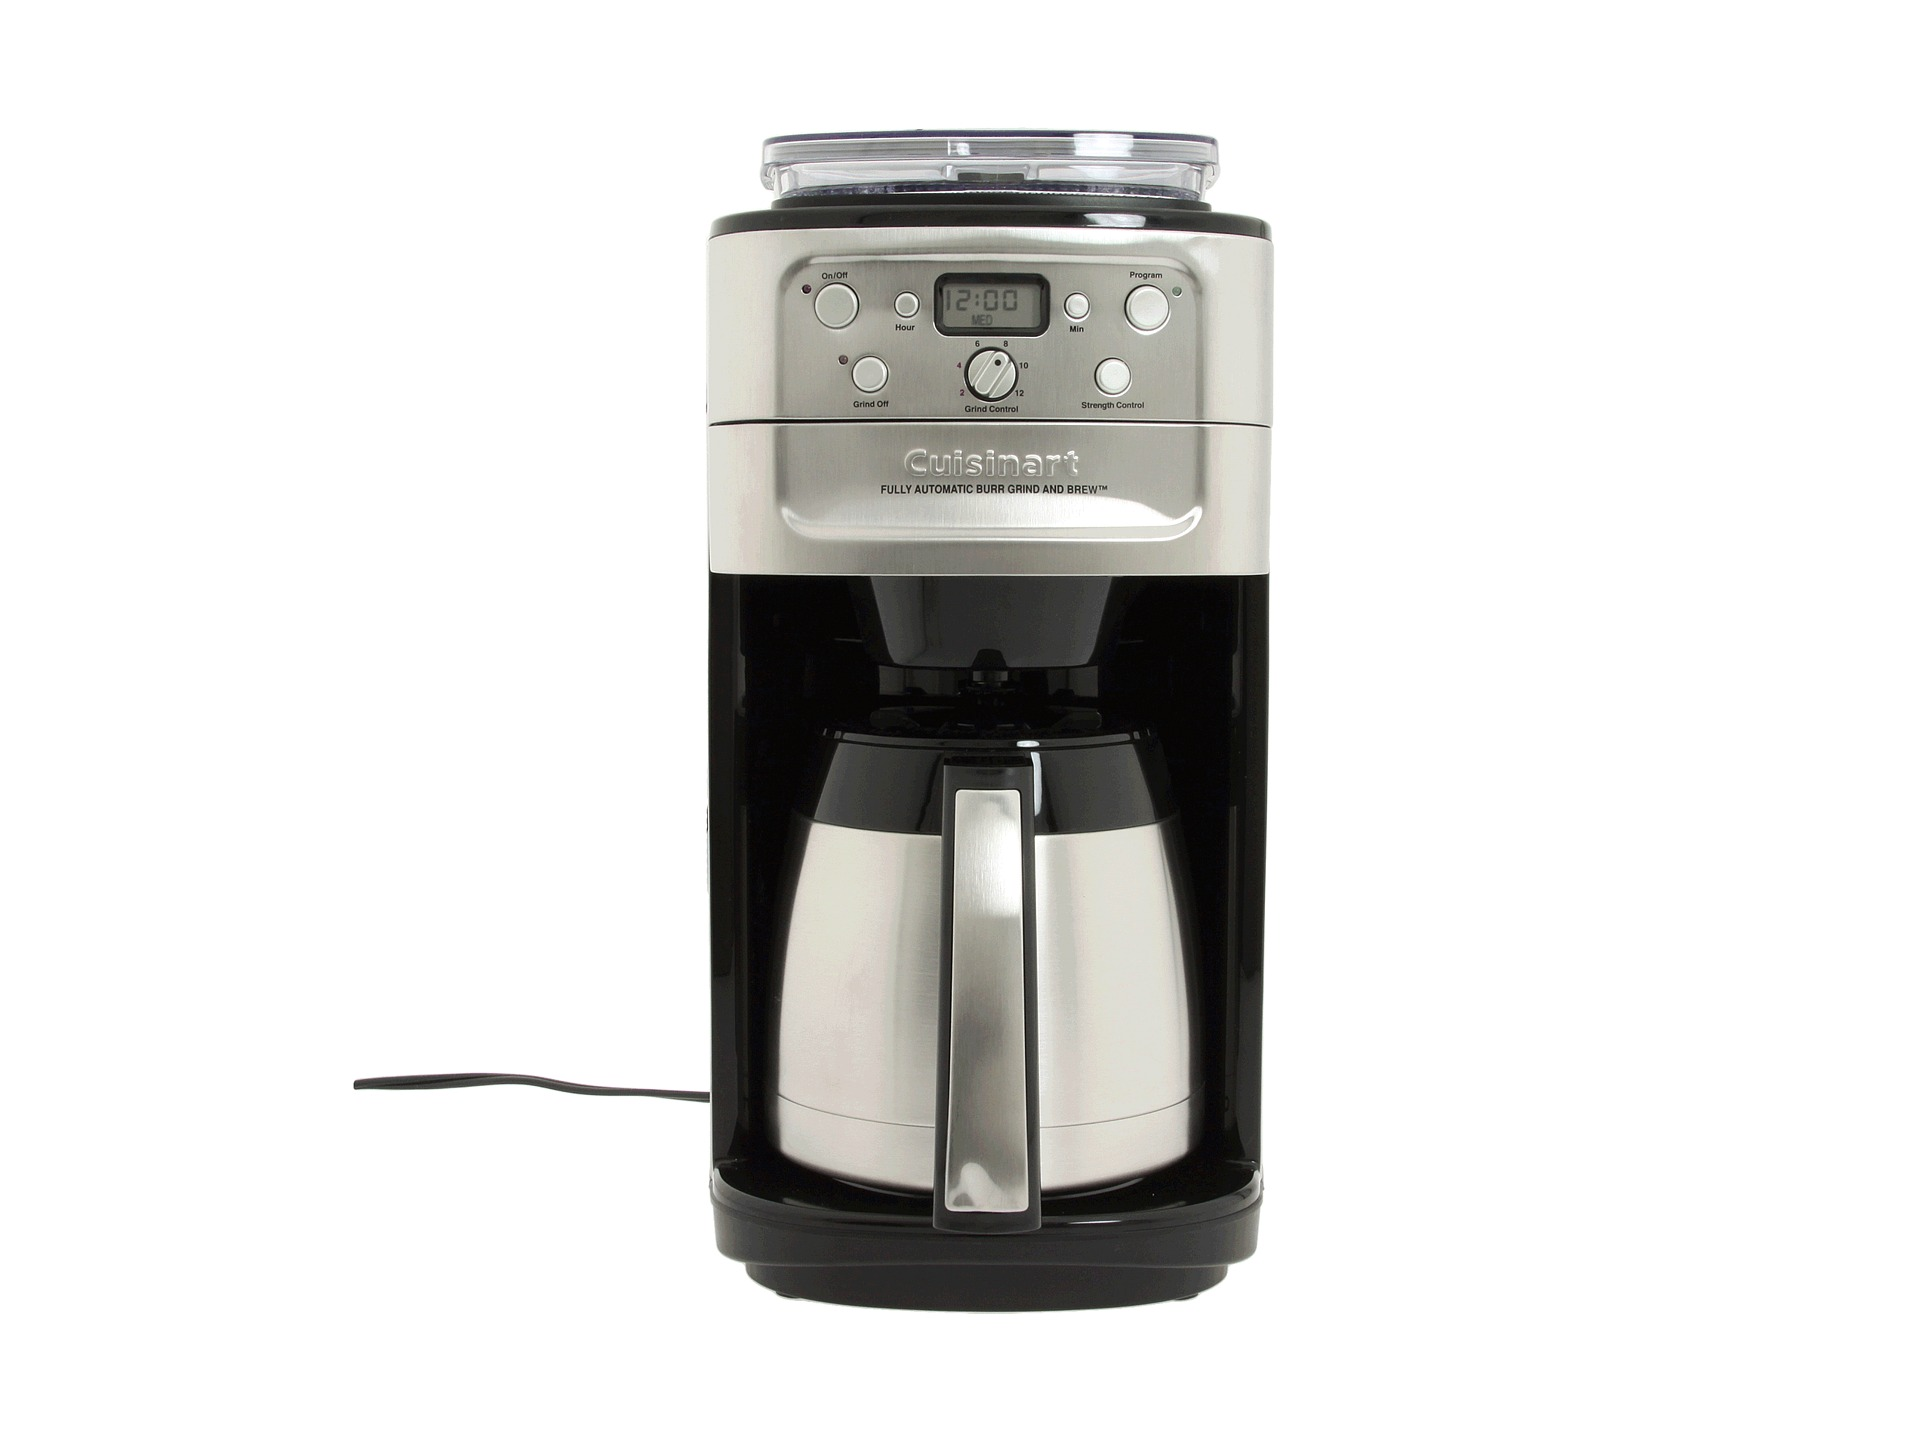 Grind And Brew Coffee Maker Thermal Carafe : Cuisinart Dgb 900bc Grind Brew Thermal 12 Cup Coffee Maker Shipped Free at Zappos